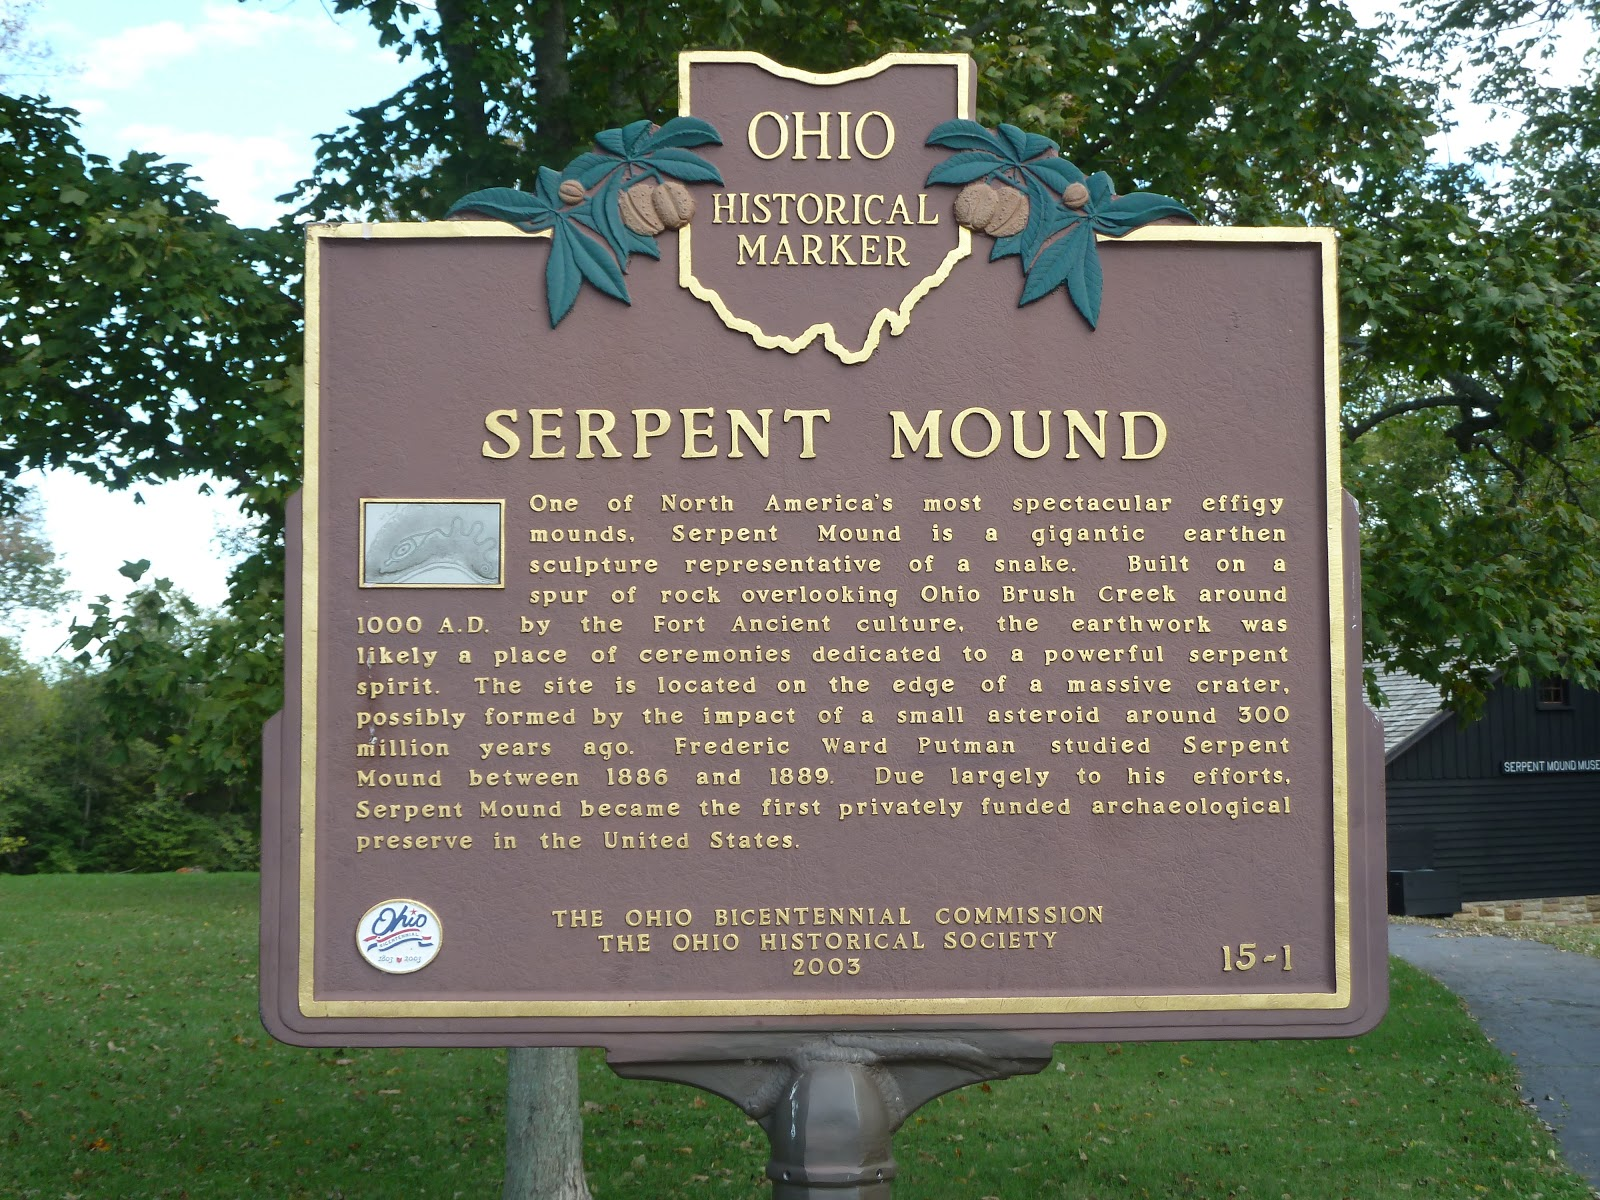 State marker for the Serpent Mound.